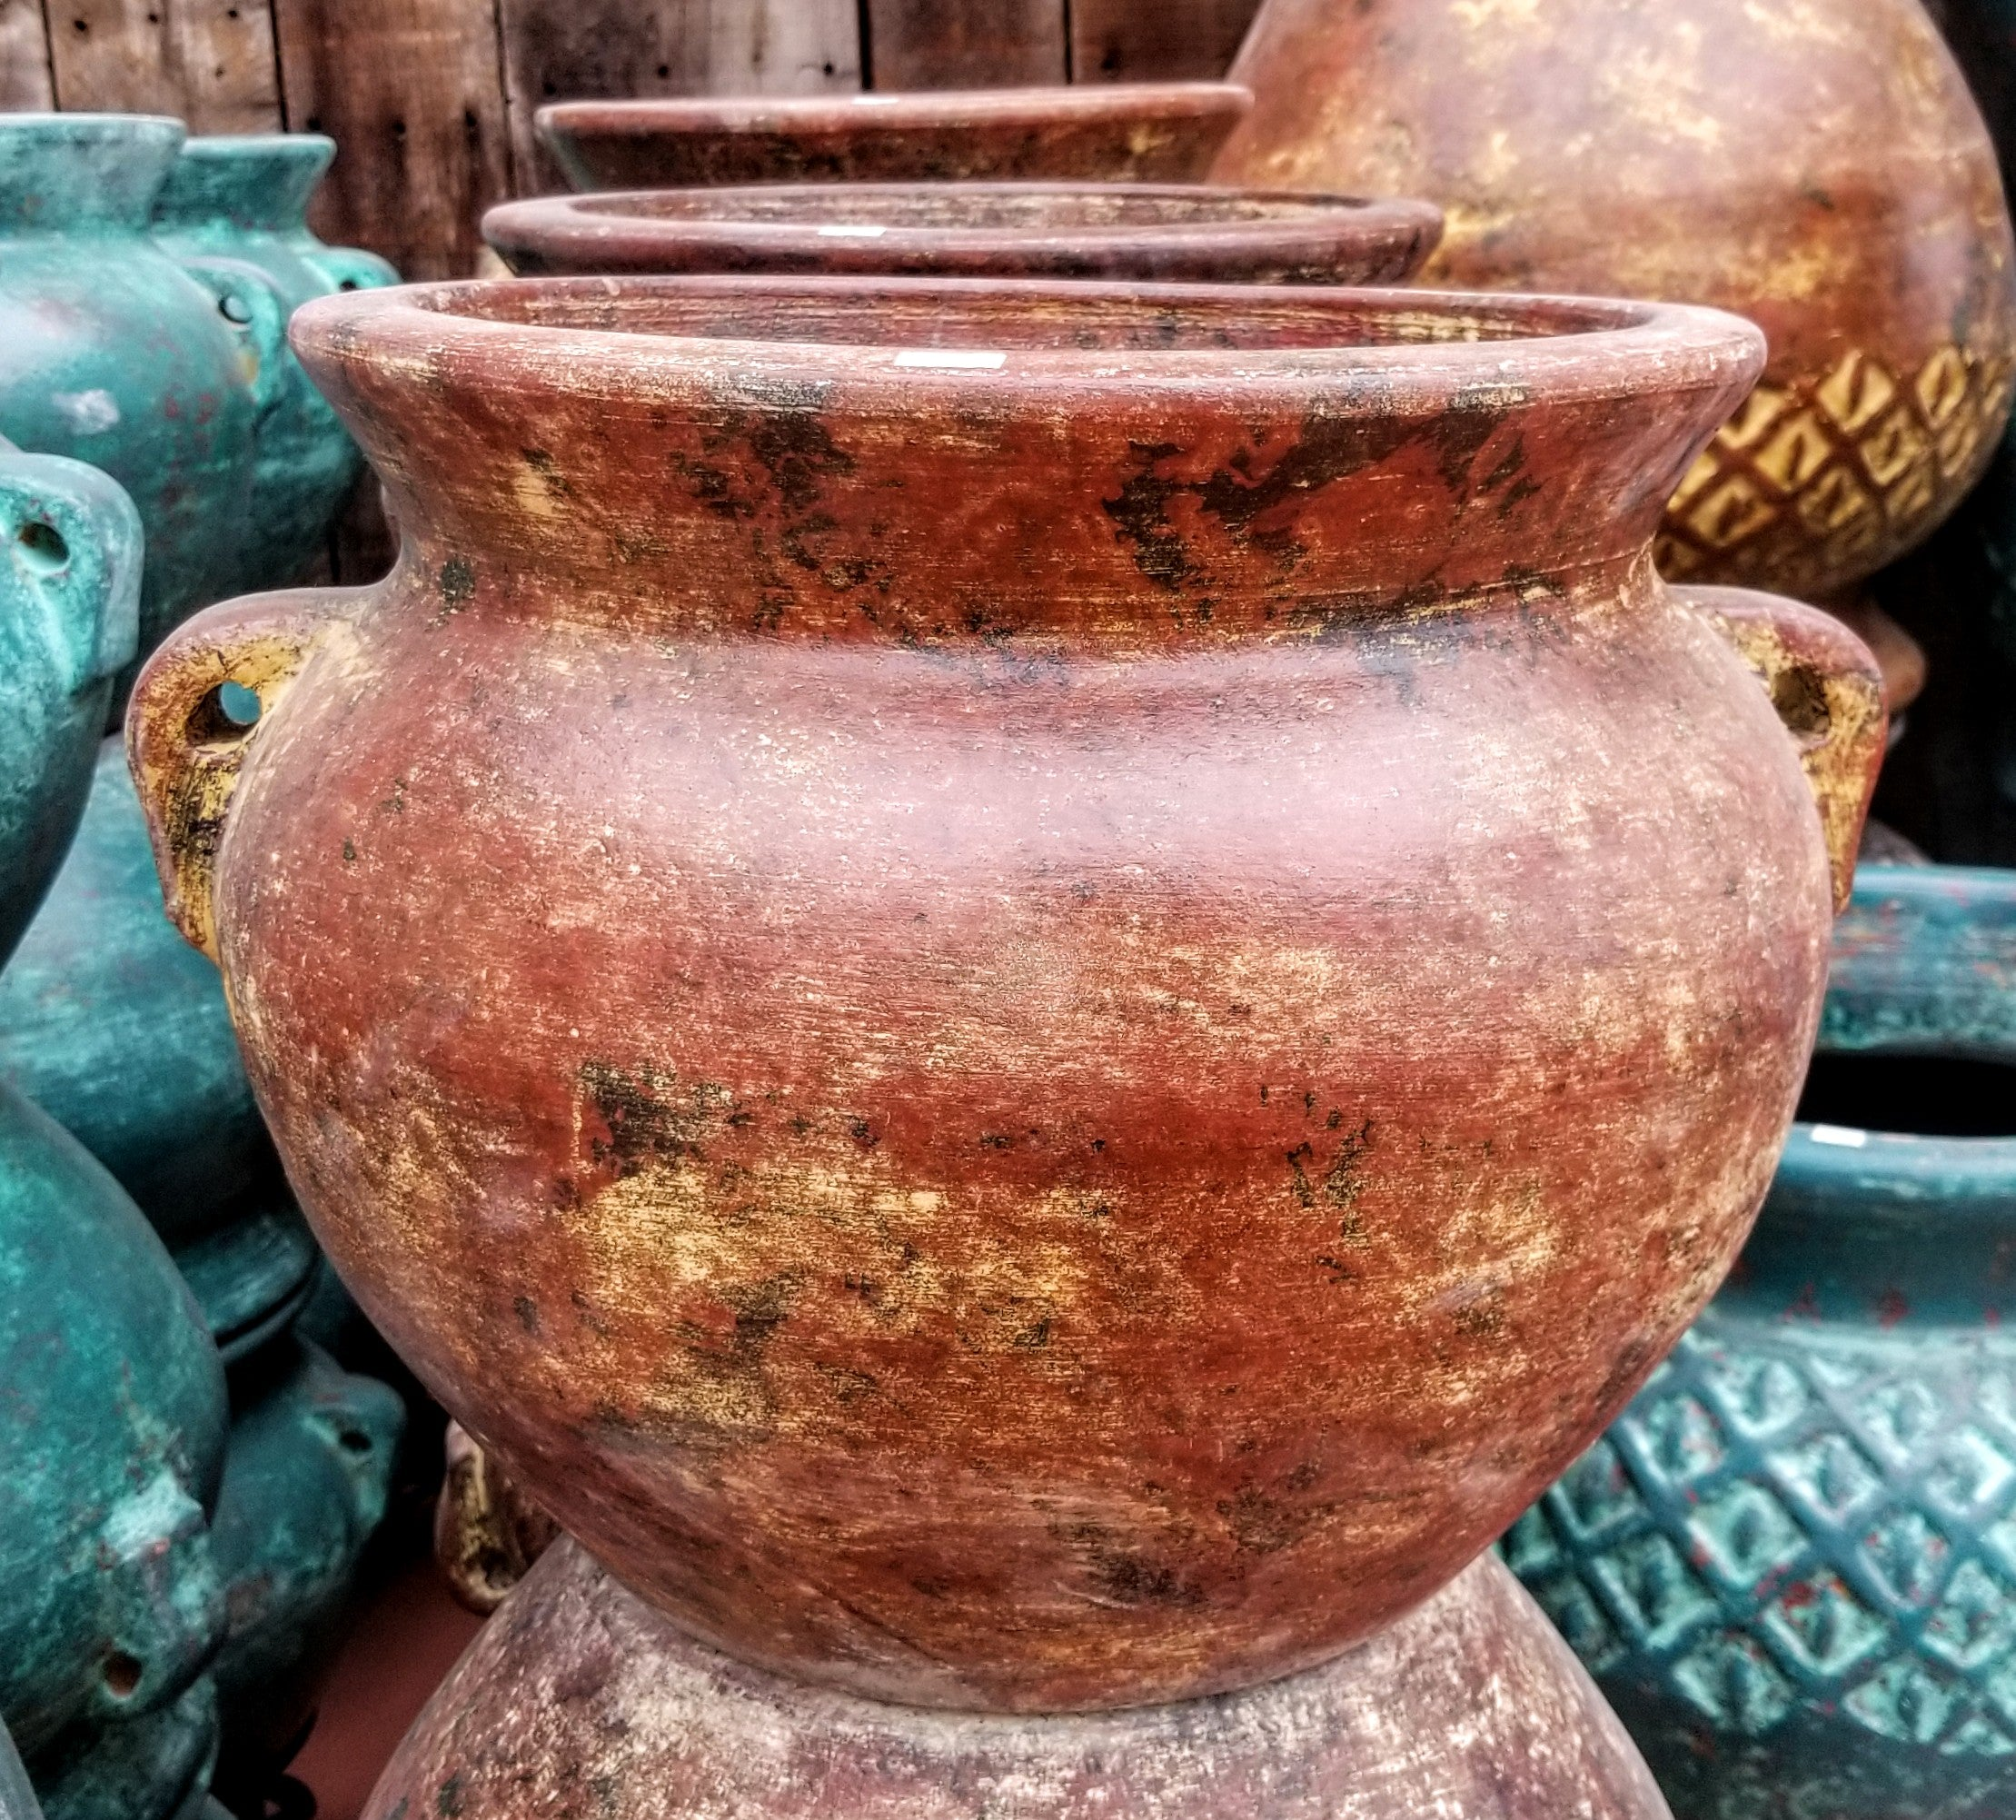 Medium Clay Pot With Handles